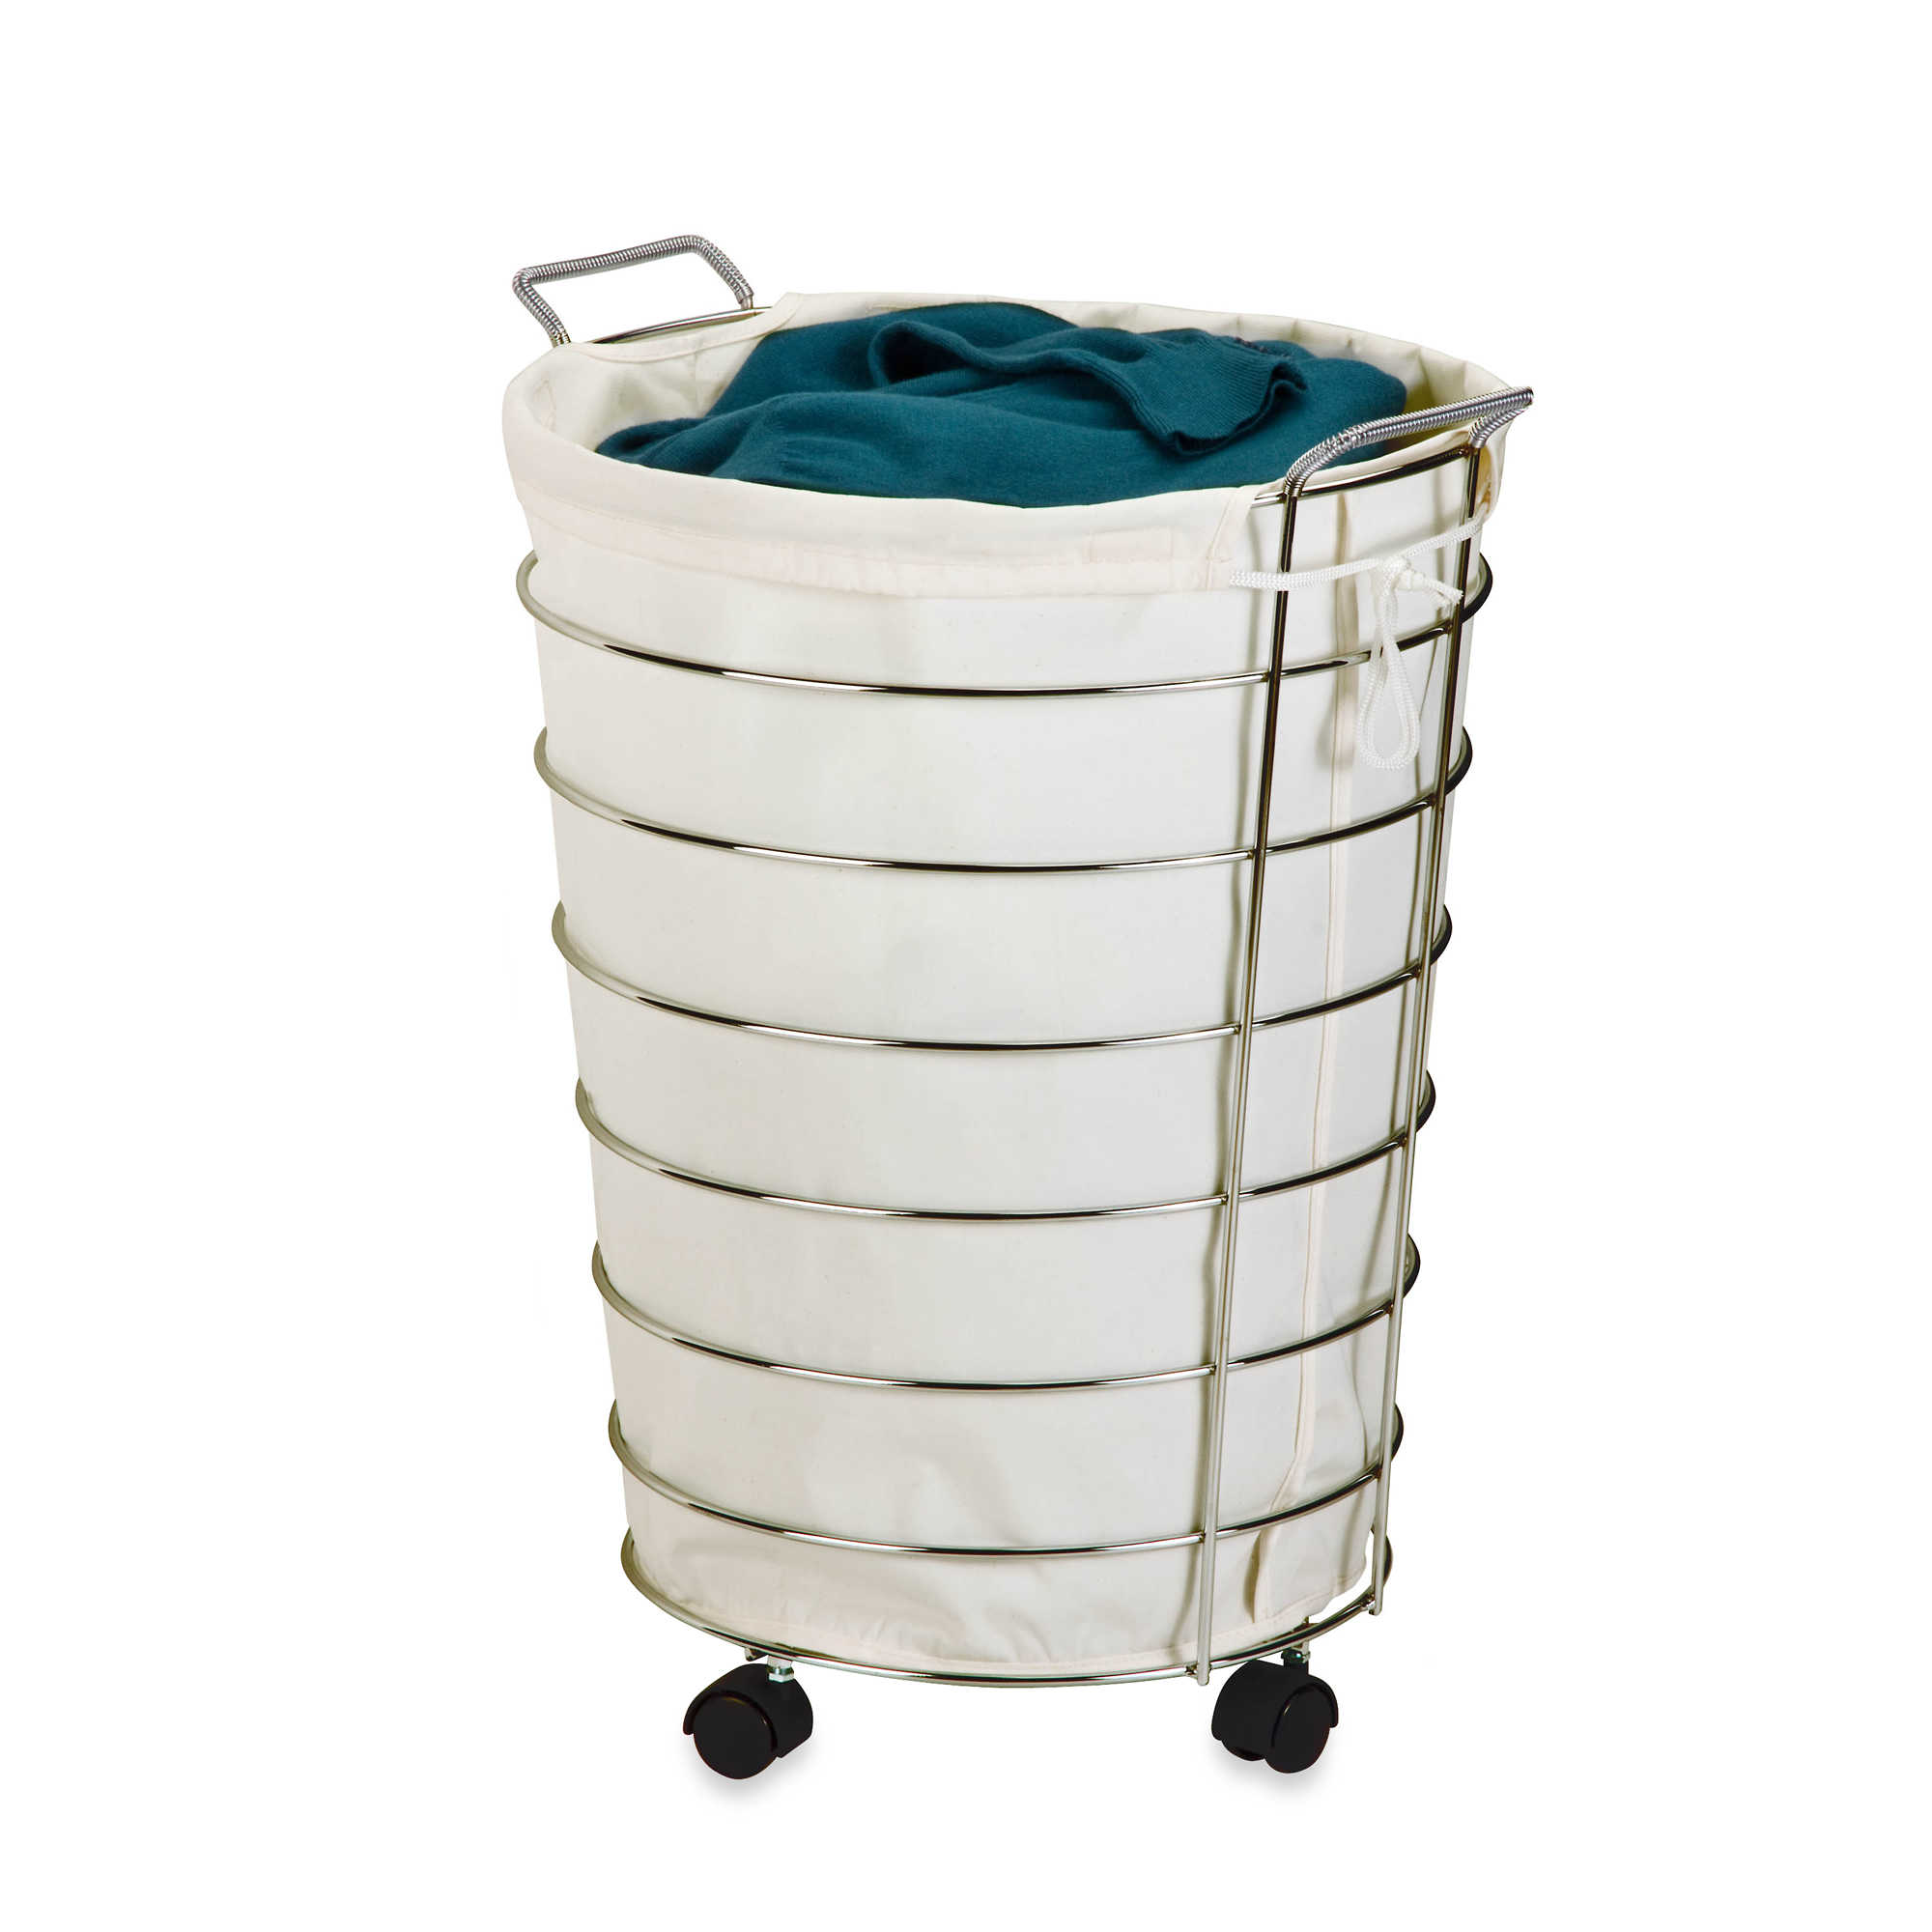 Chrome Laundry Basket An Easy Solution To Carry Out The Heavy Laundry In Your